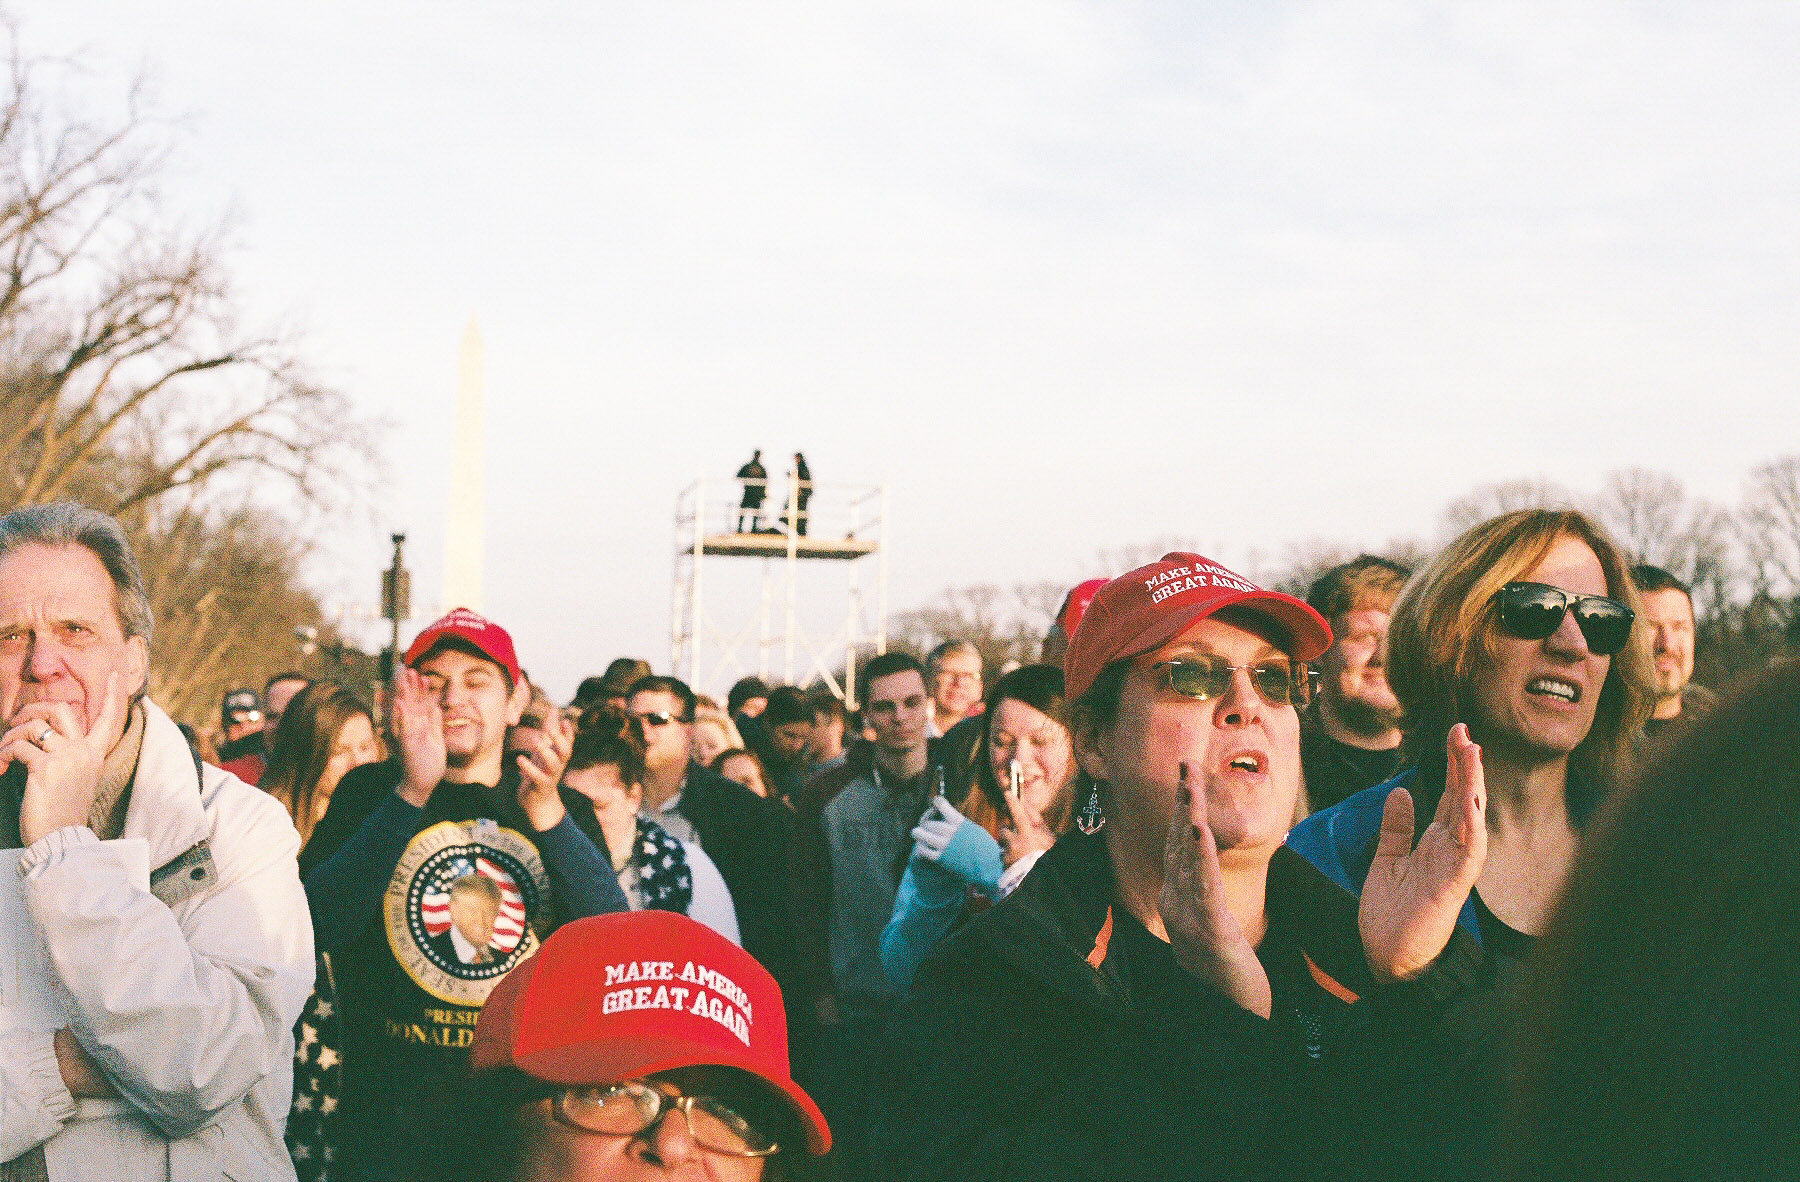 Inauguration Day 2017 35mm-10.jpg